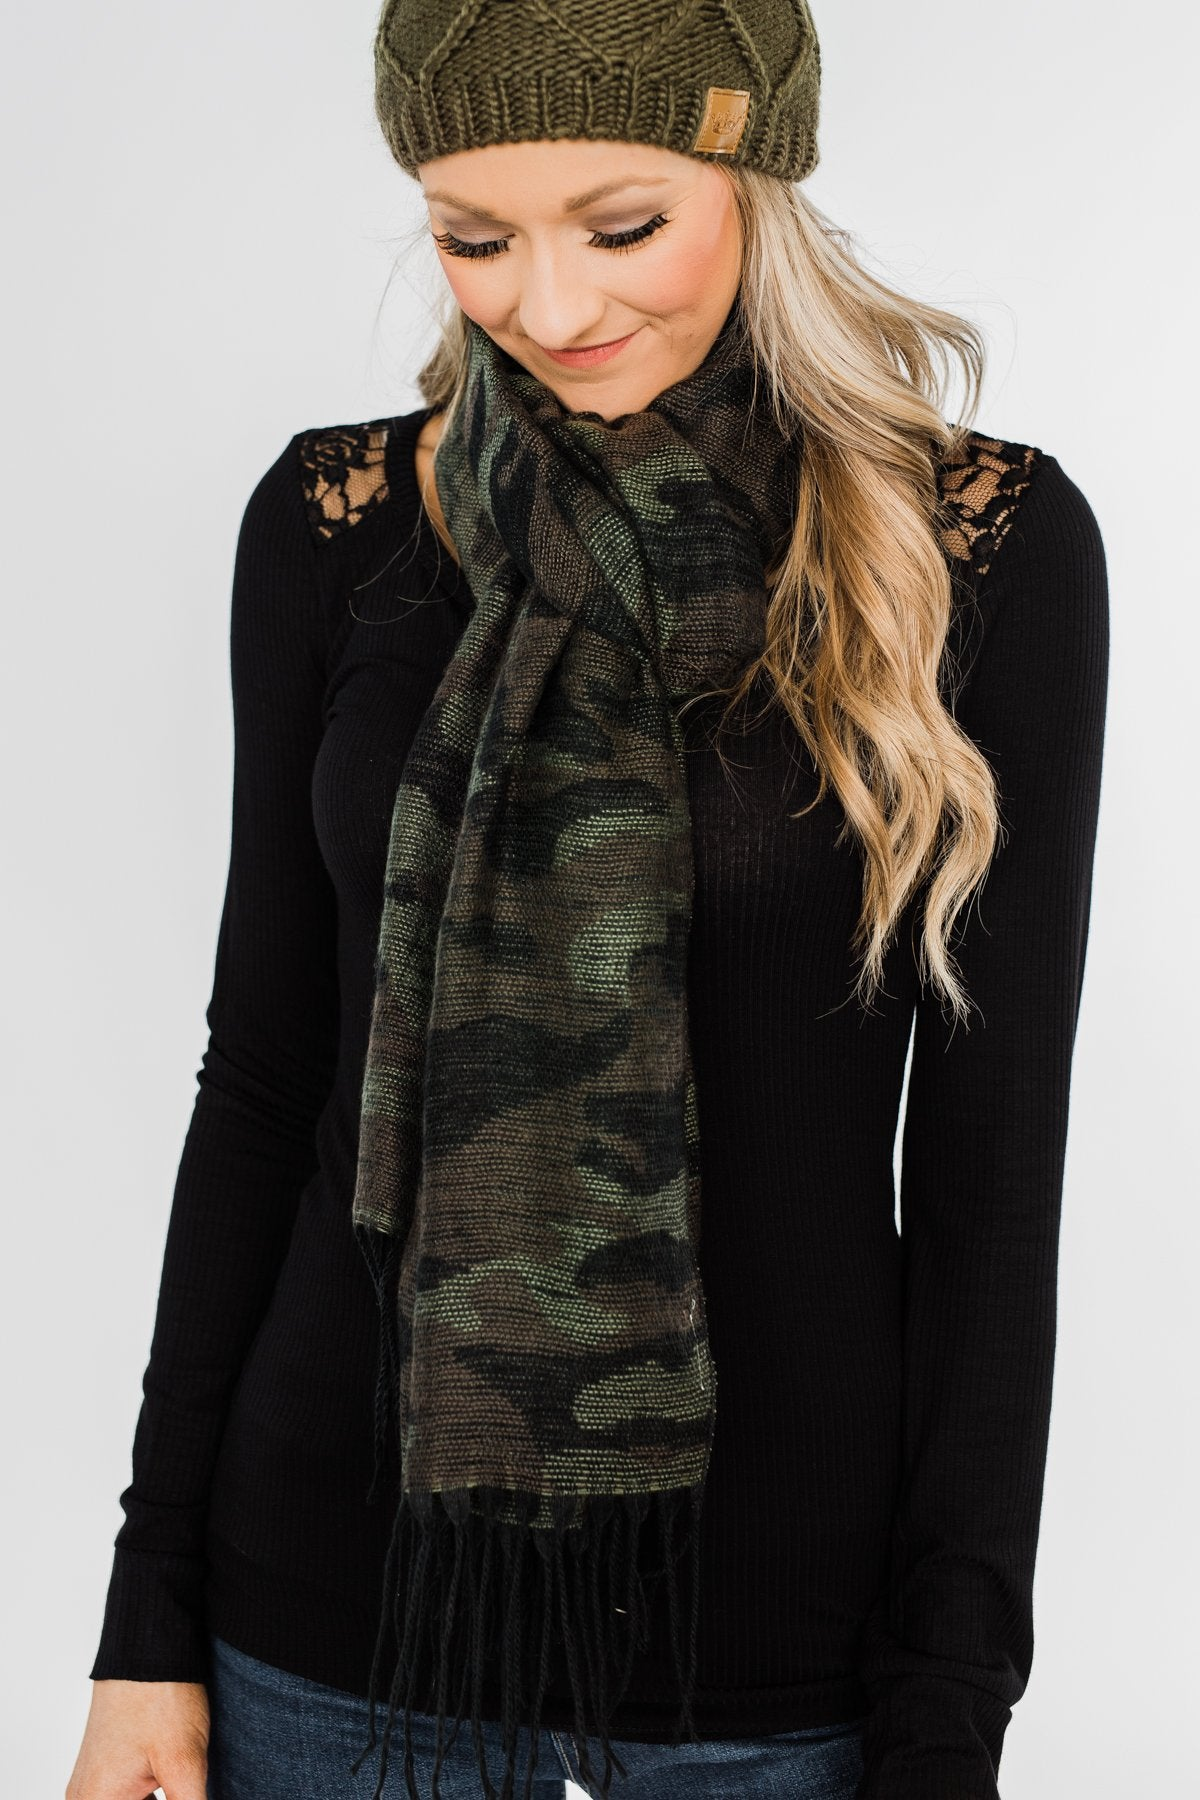 Knit Table Runner Scarf- Camo